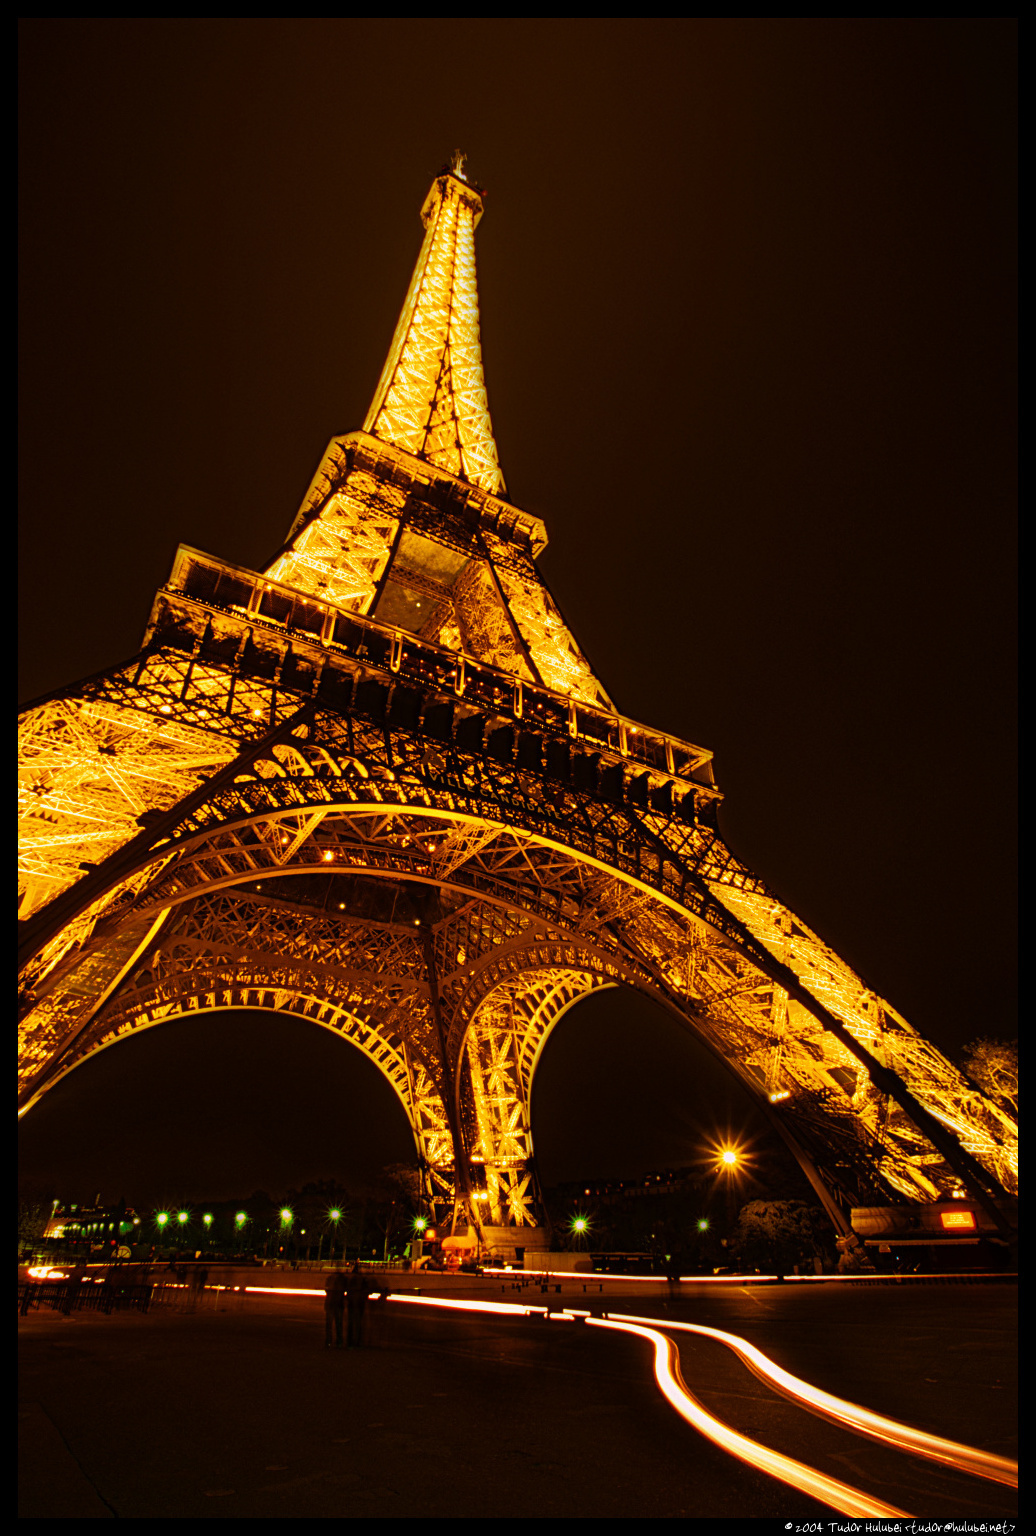 Night view of the eiffel tower tour eiffel paris france